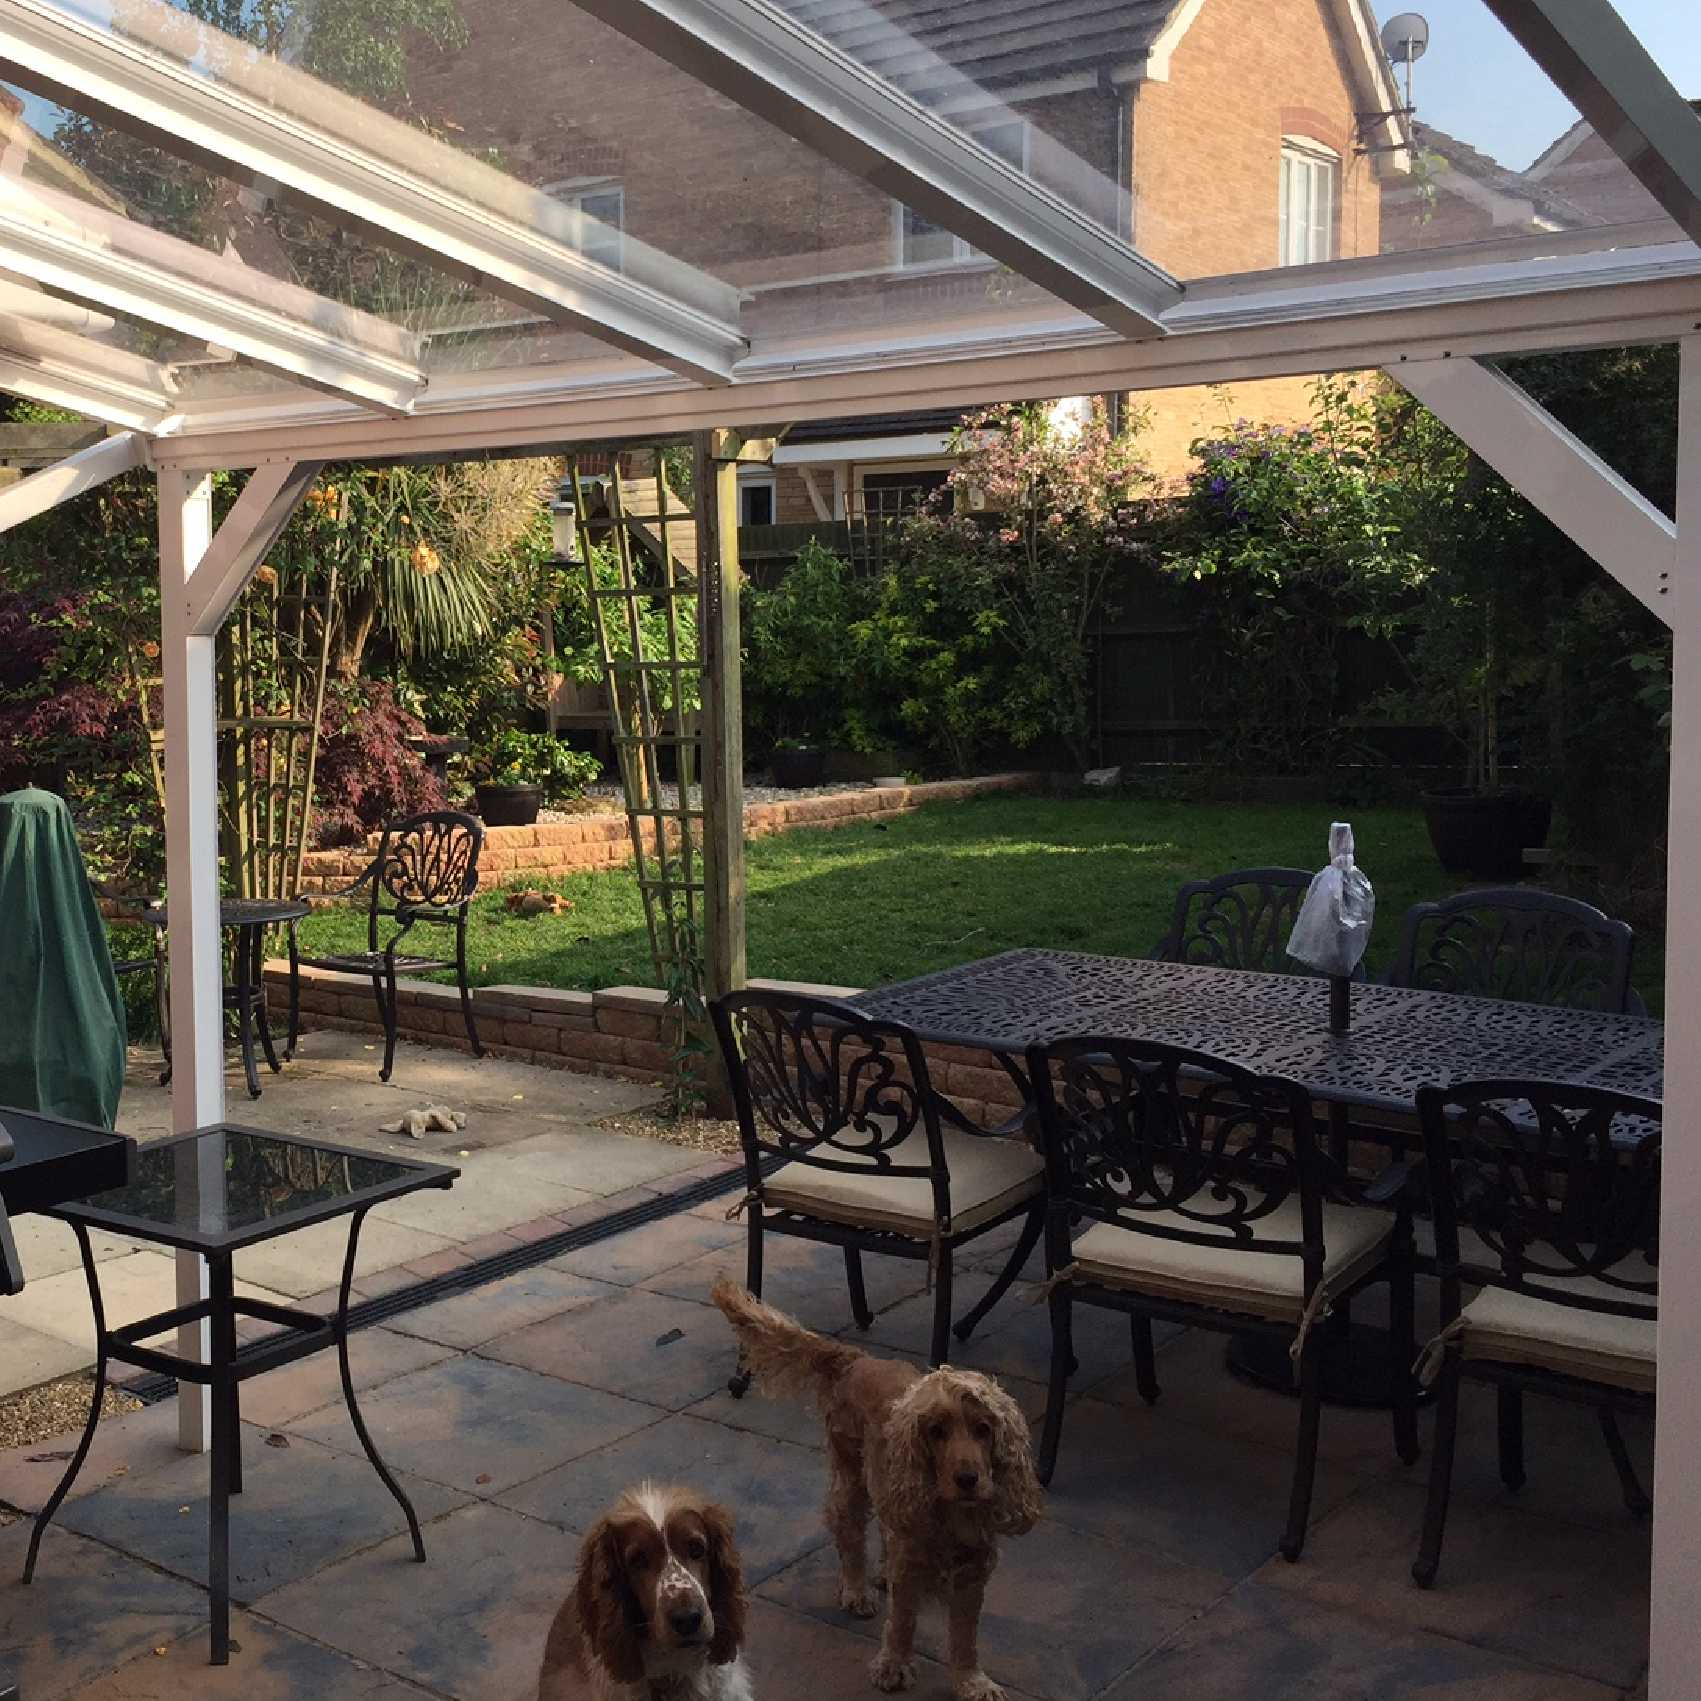 Affordable Omega Smart White Lean-To Canopy UNGLAZED for 6mm Glazing - 2.1m (W) x 2.5m (P), (2) Supporting Posts